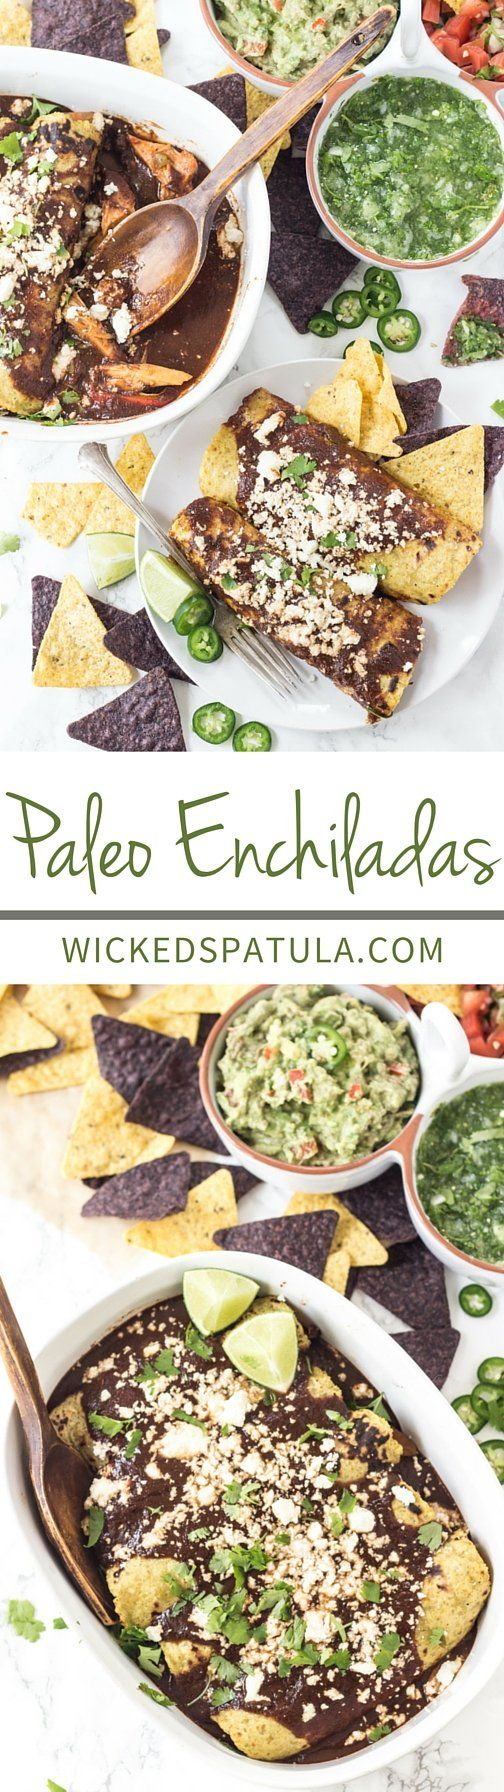 Paleo Enchiladas with ONE ingredient tortillas and a quick delicious sauce!